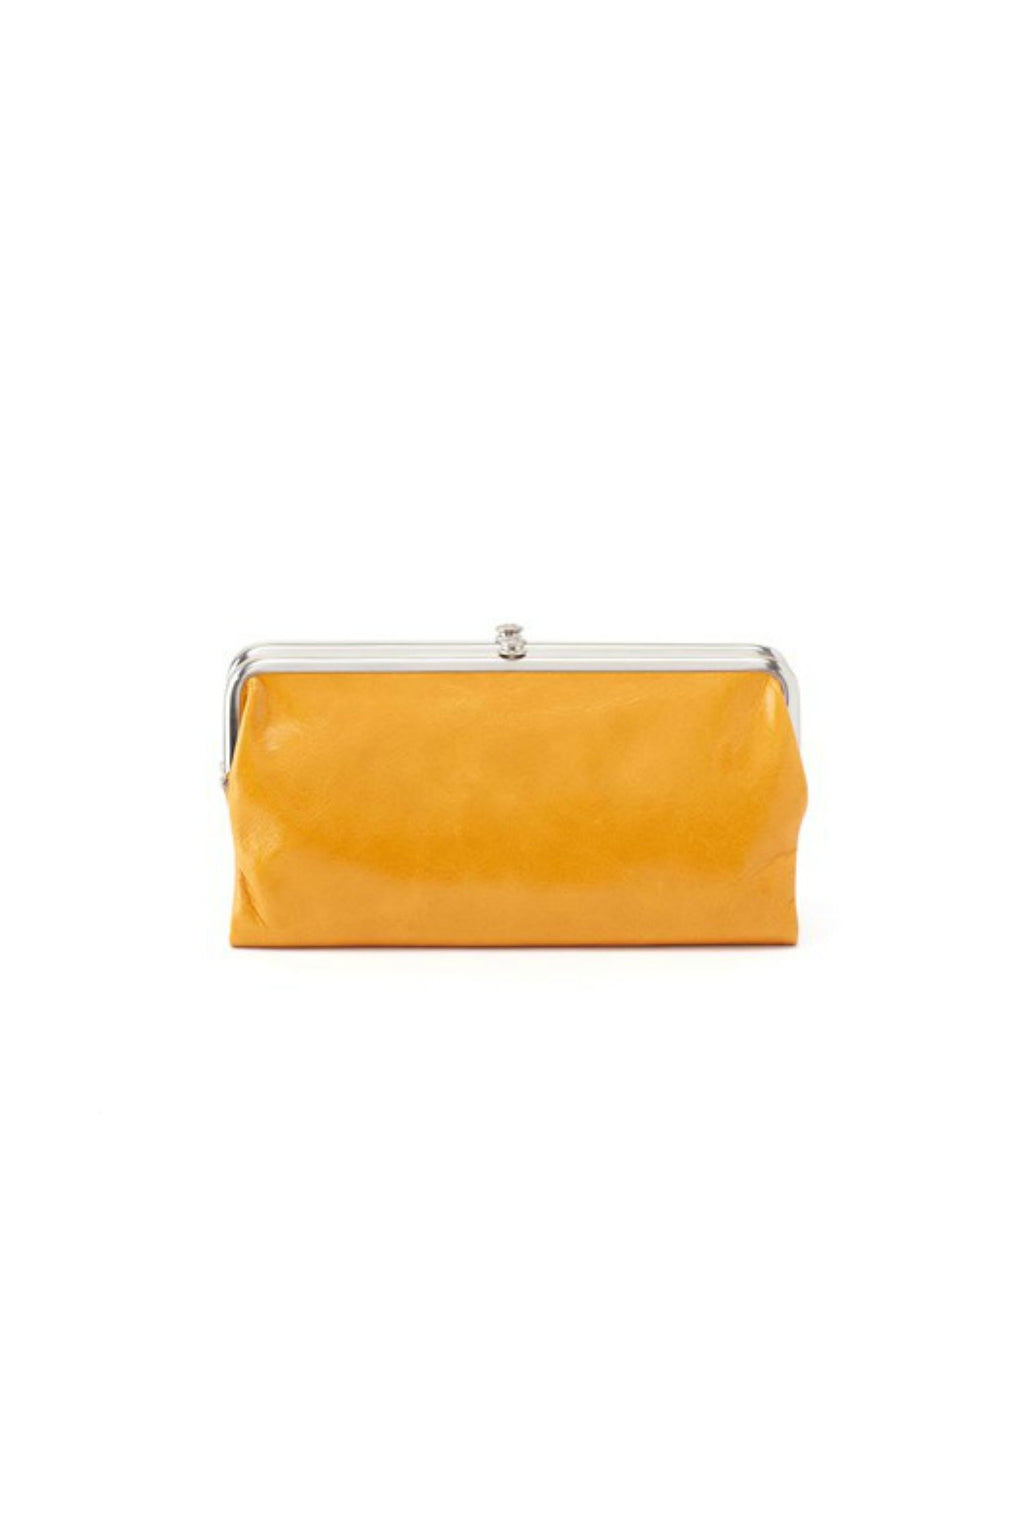 Hobo Lauren Wallet in Amber